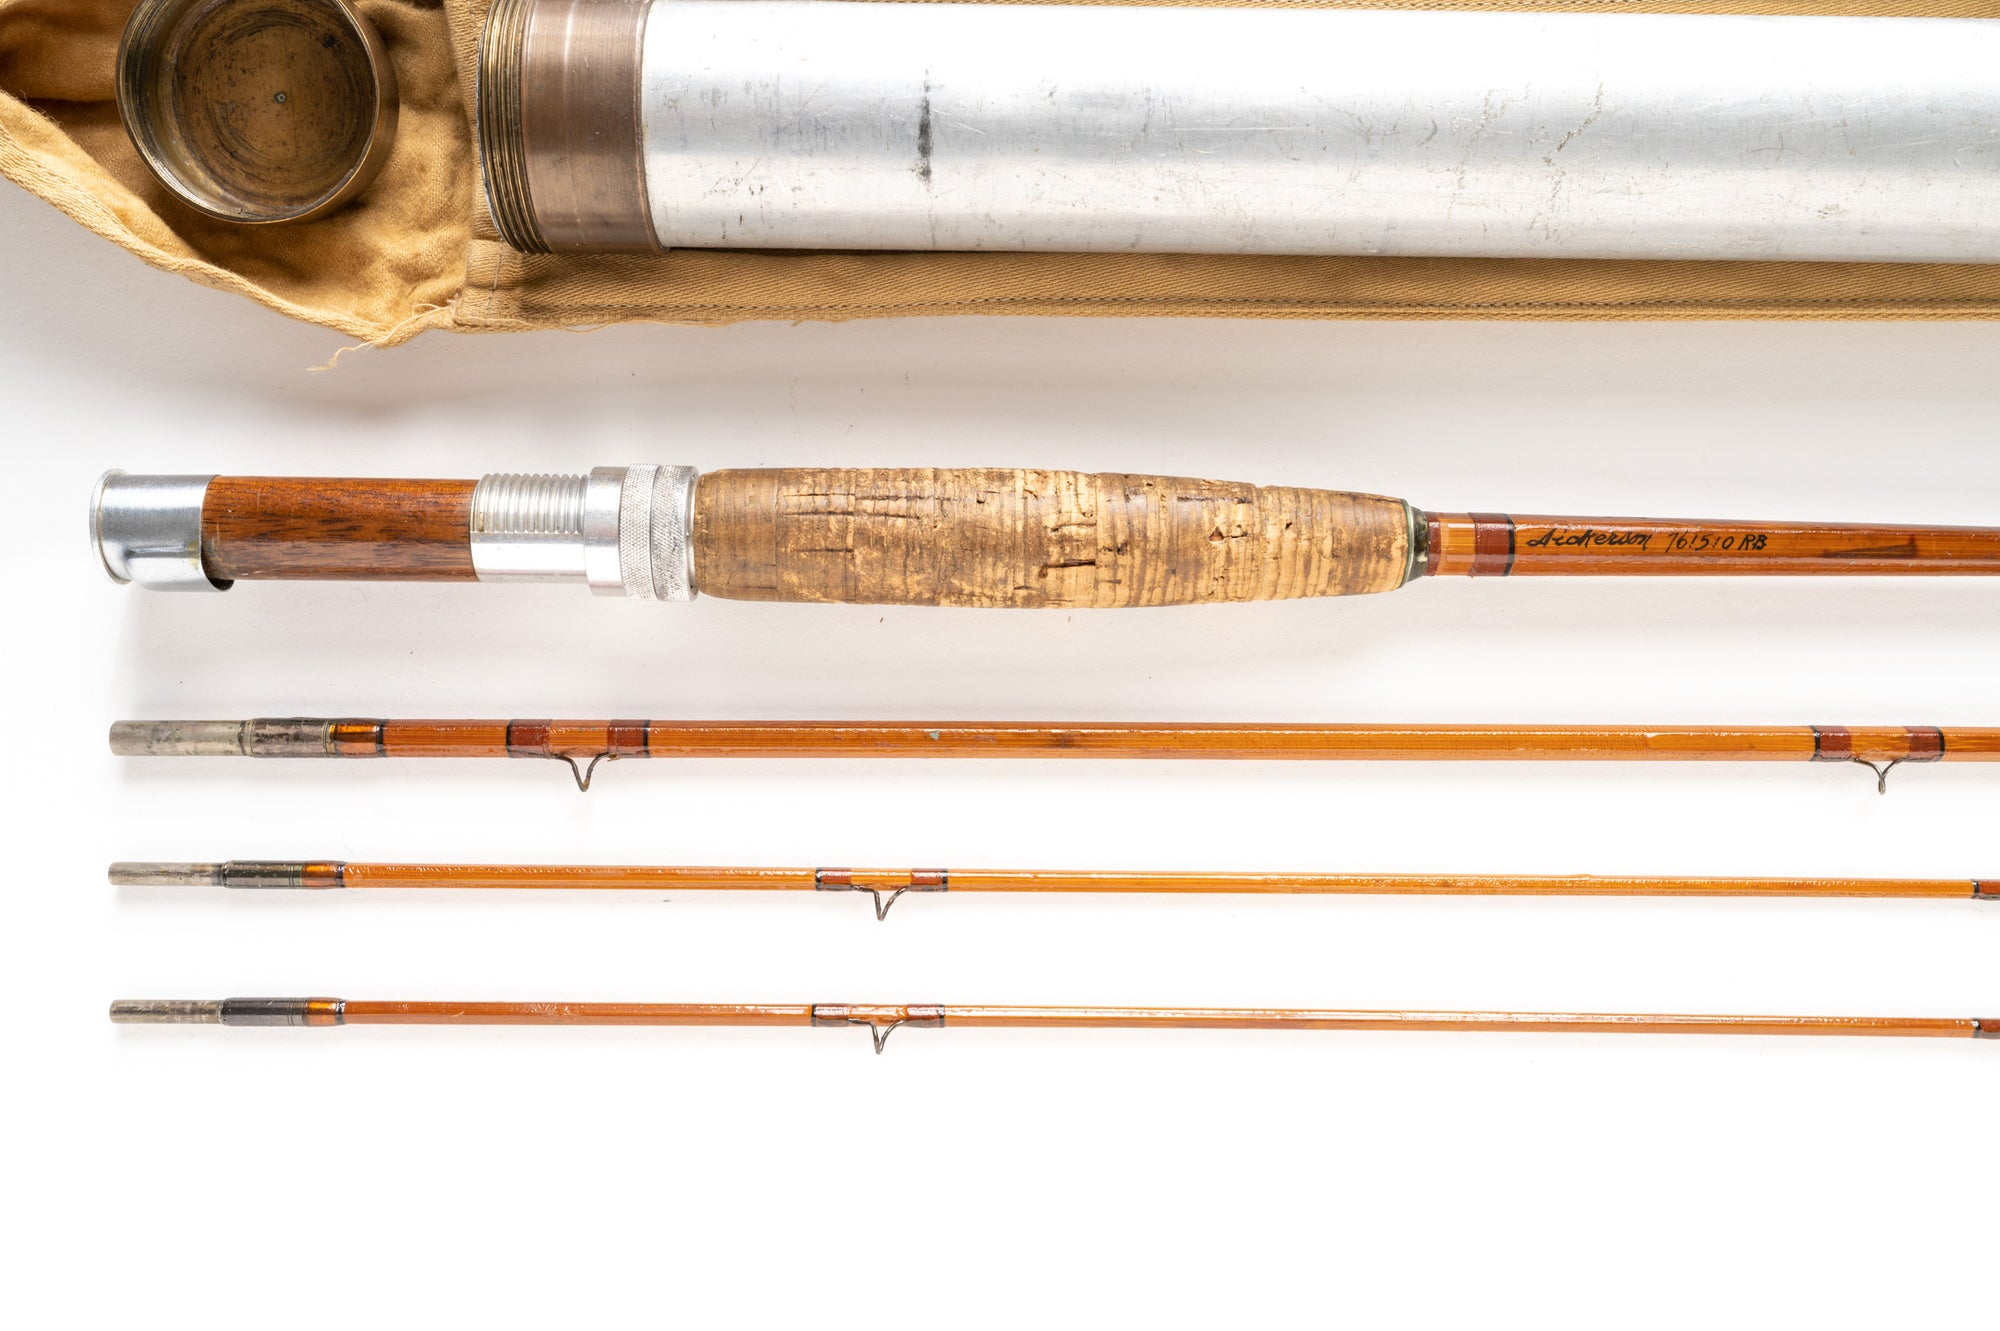 "Dickerson 761510 RB (Ray Bergman) Fly Rod 7'6"" 3/2 #5"